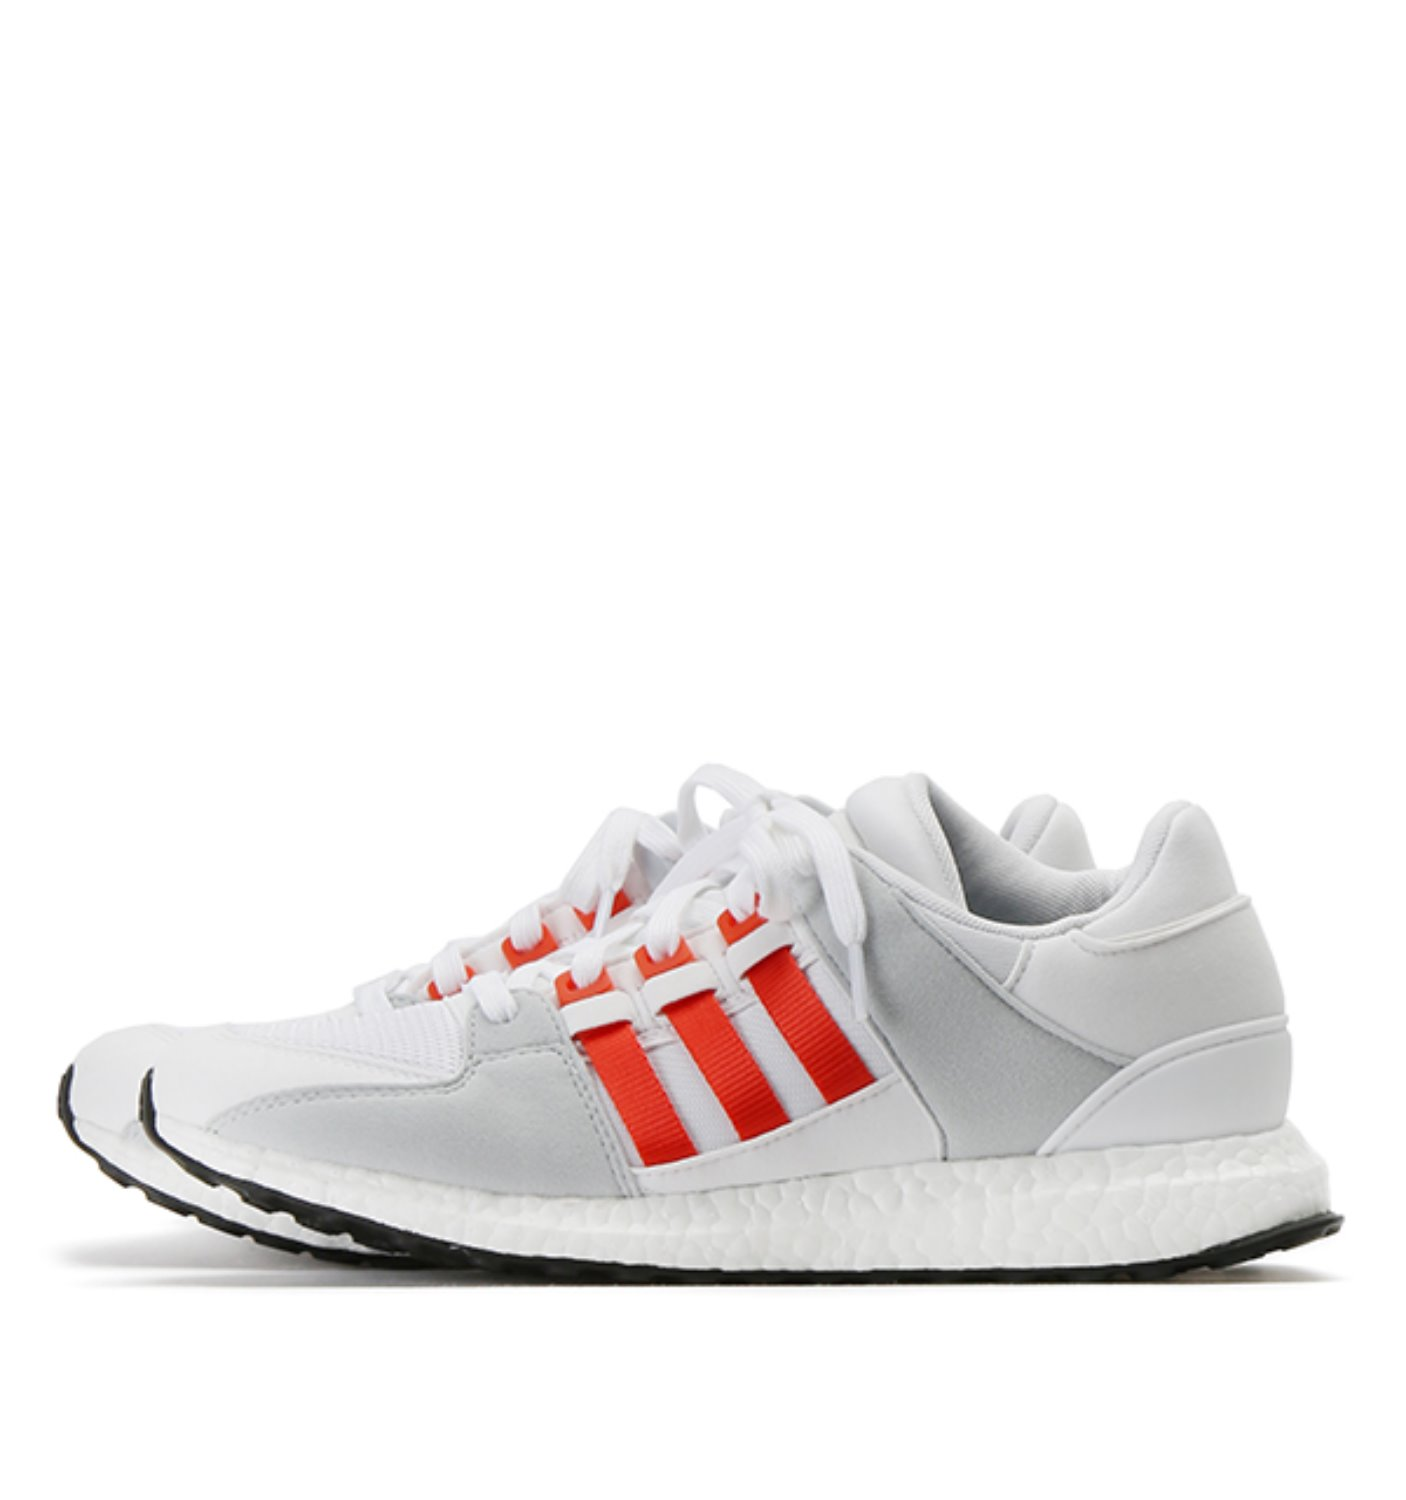 EQT SUPPORT ULTRA (BY9532) WHITE/ORANGE